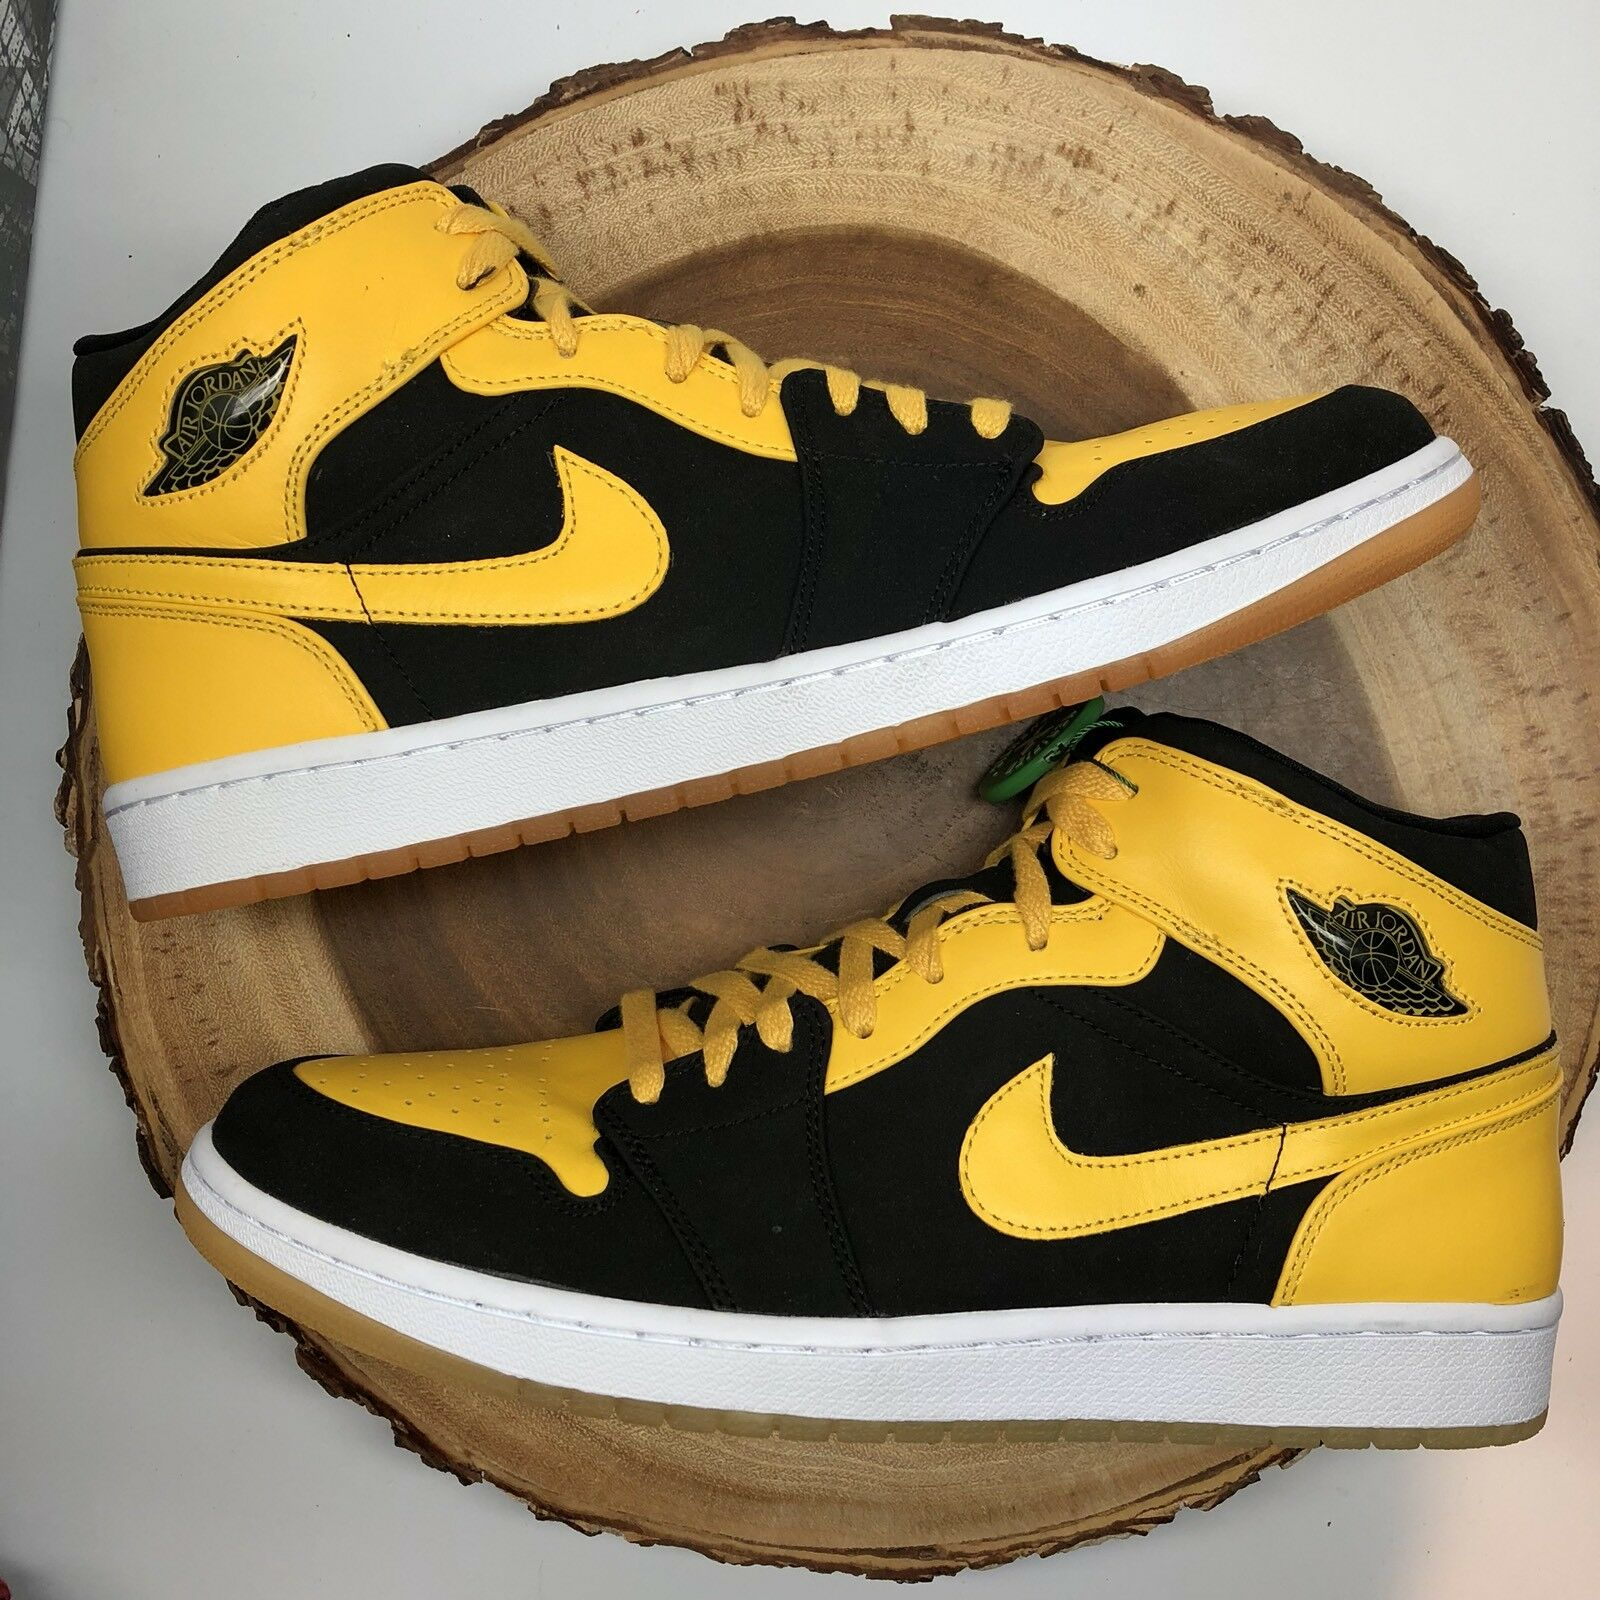 low priced 6cae8 6b999 Nike Nike Nike Air Jordan Retro 1 Yellow Old Love New Size 13 Chicago Royal  Top